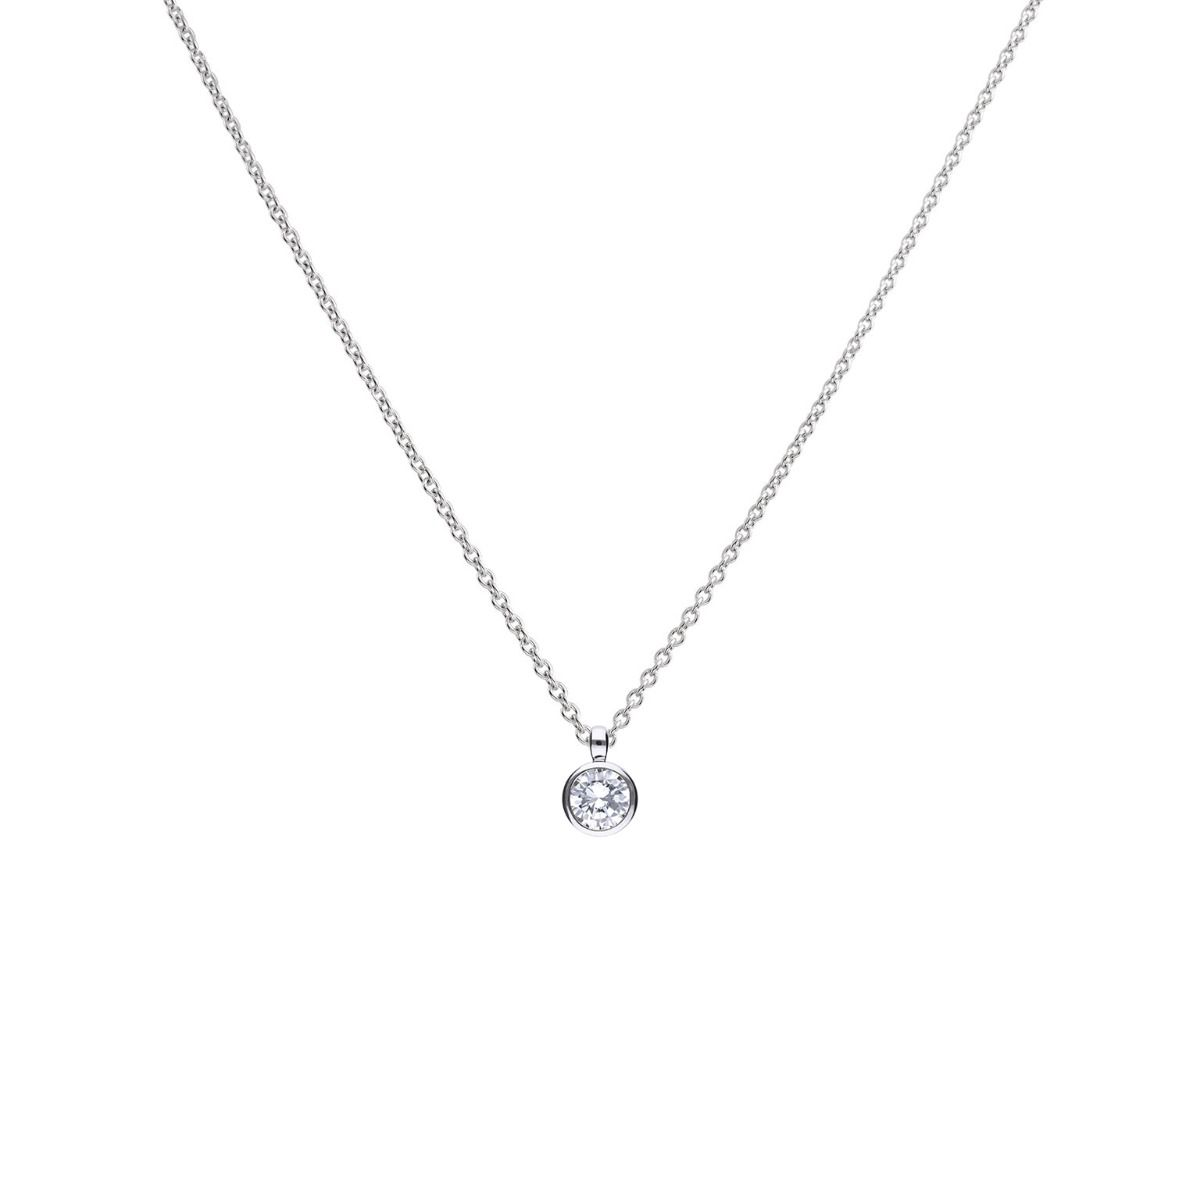 69490 - Silver diamonfire CZ 2.0ct Claw set Solitaire Pendant & Chain